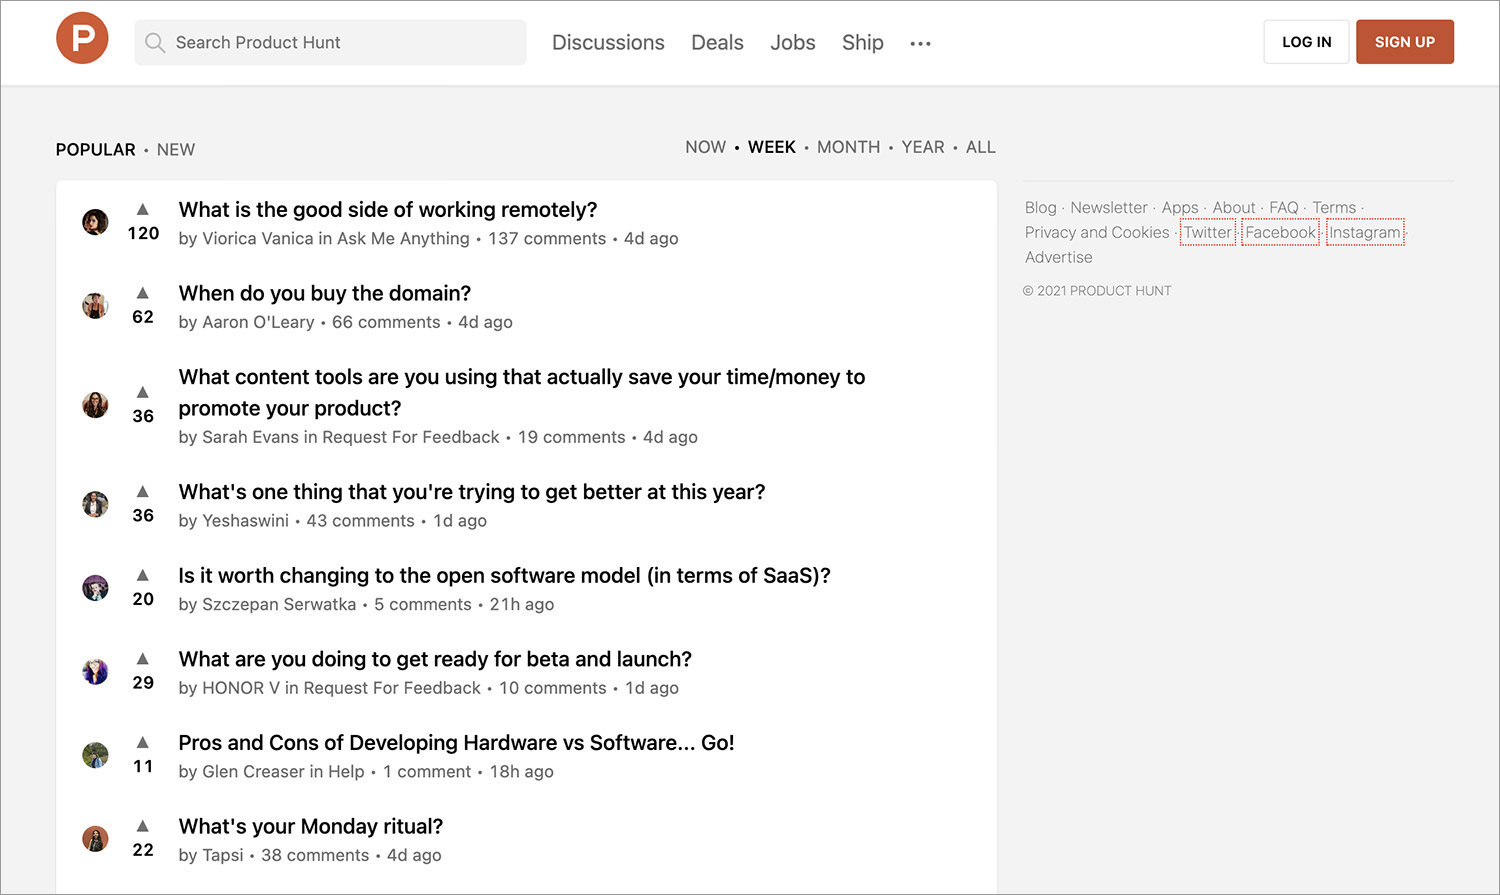 ProductHunt Discussion